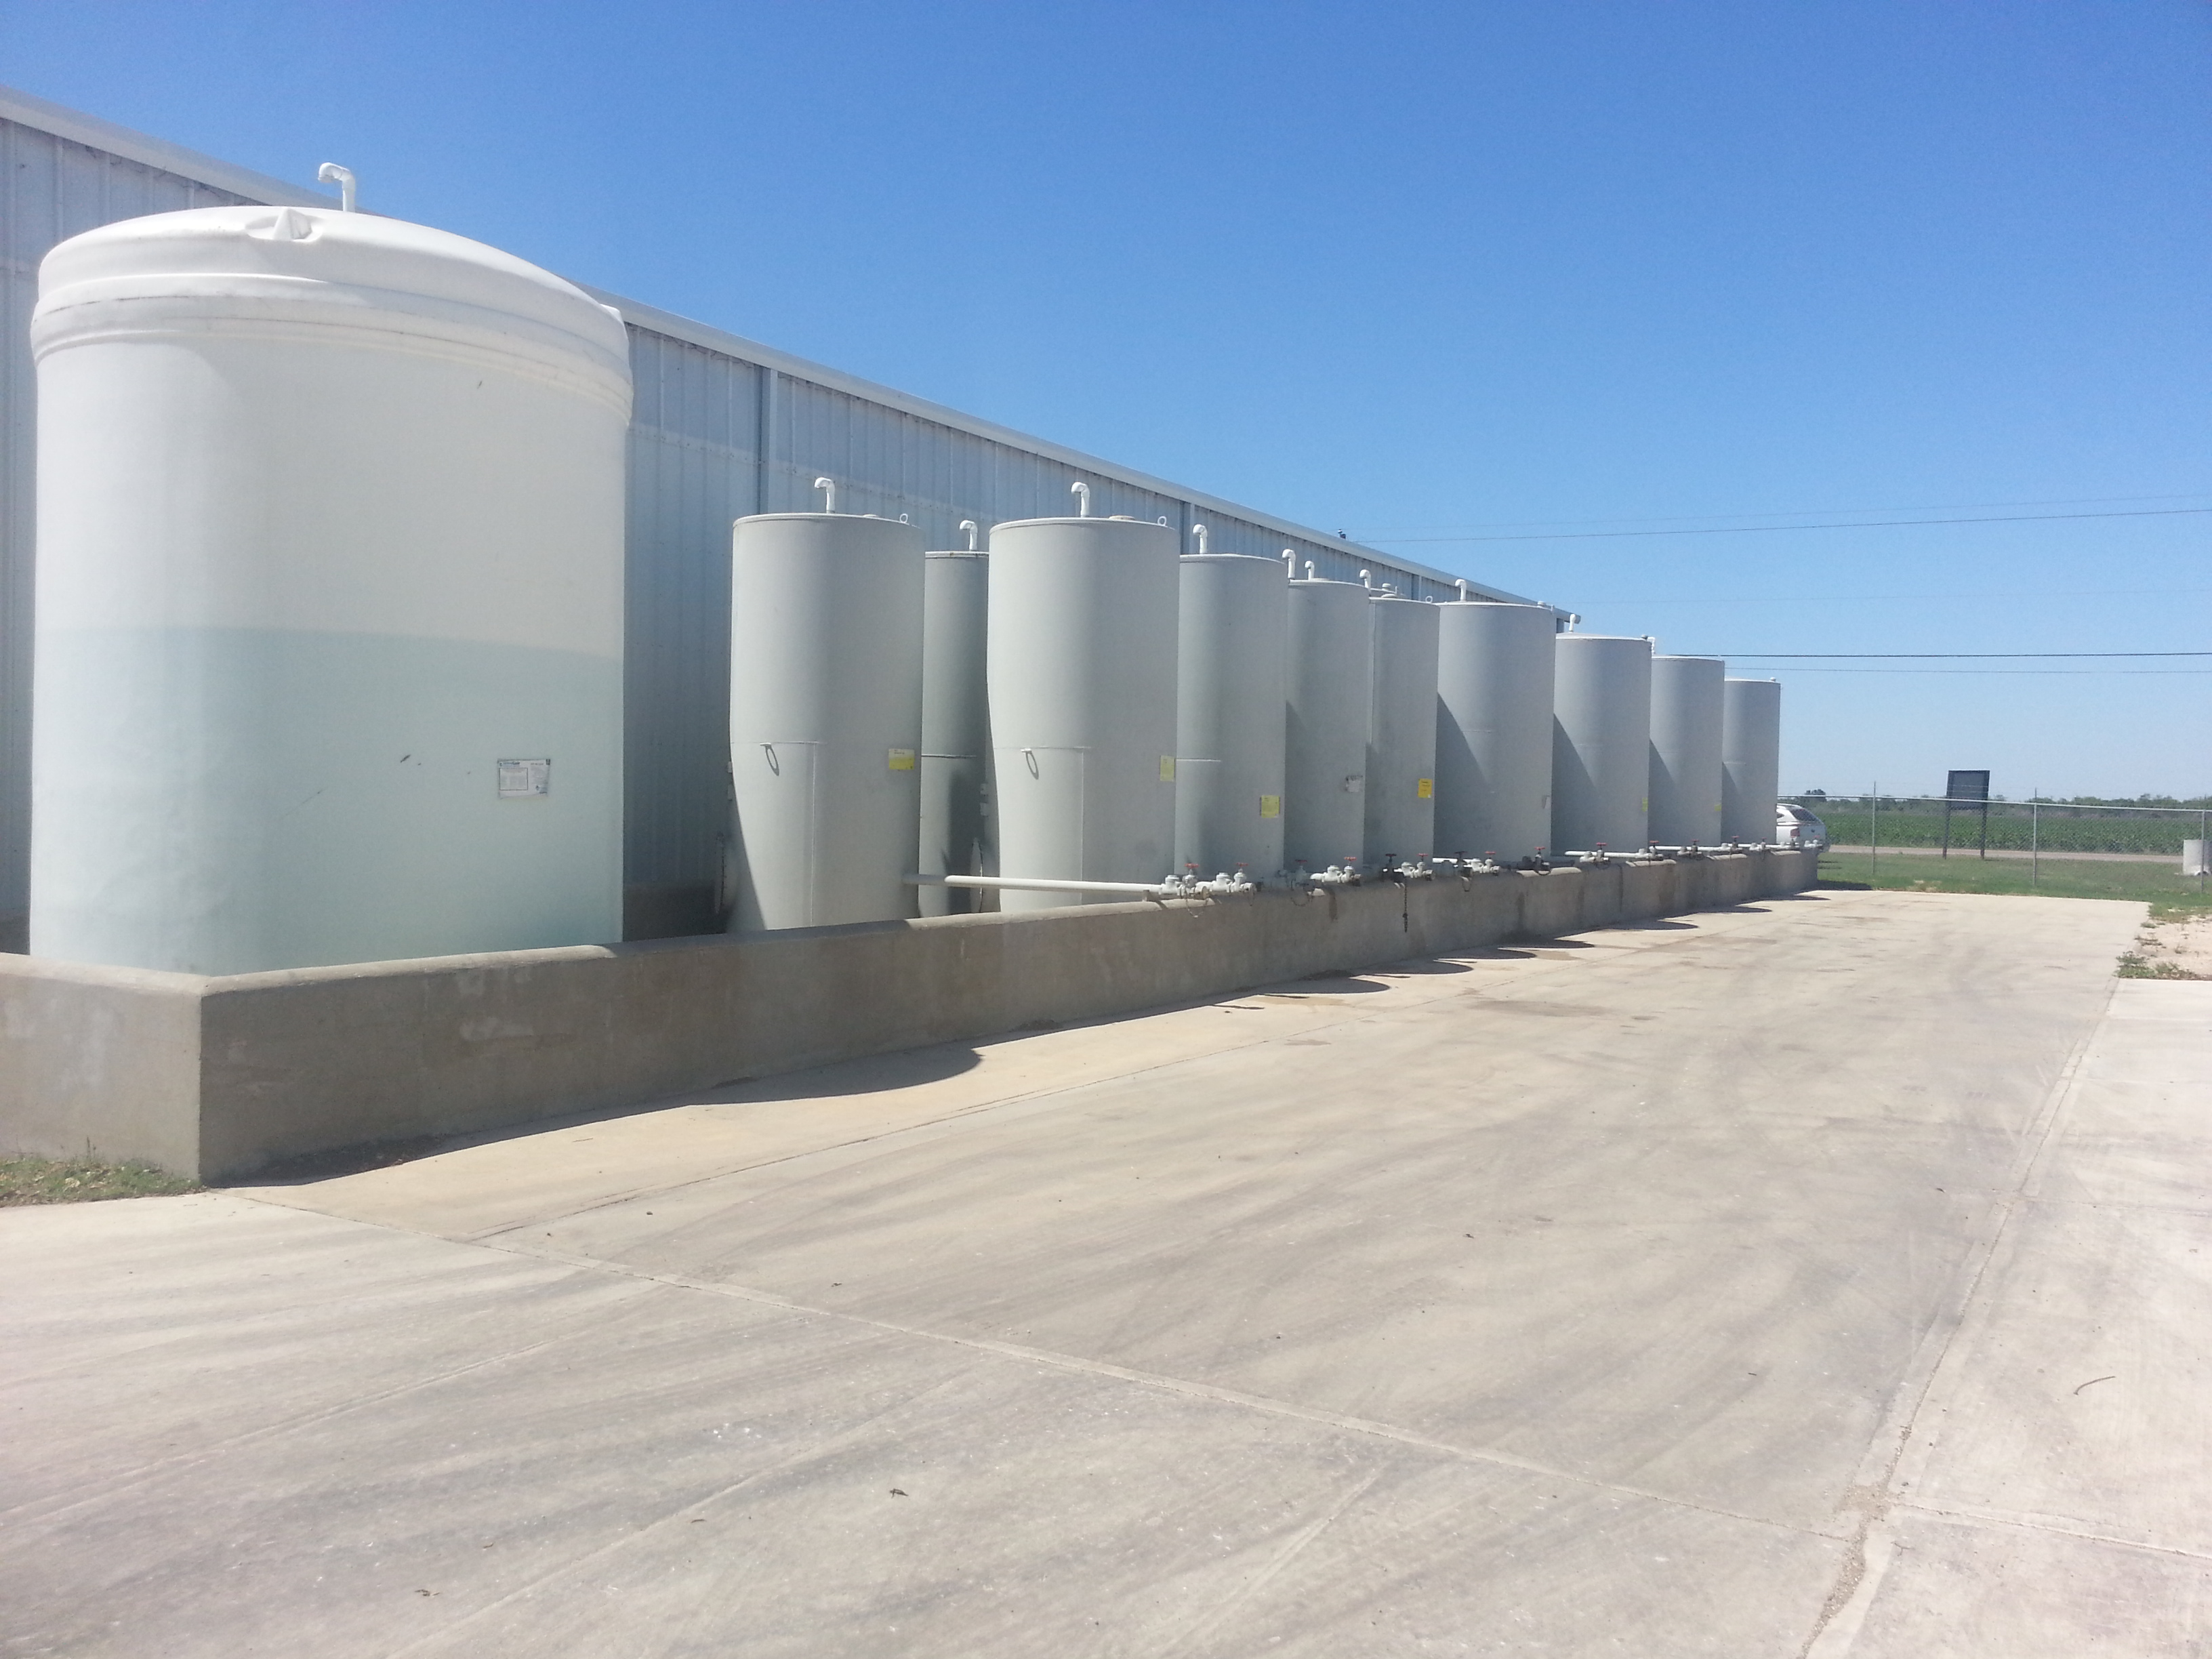 DEF and Lubricant Tanks